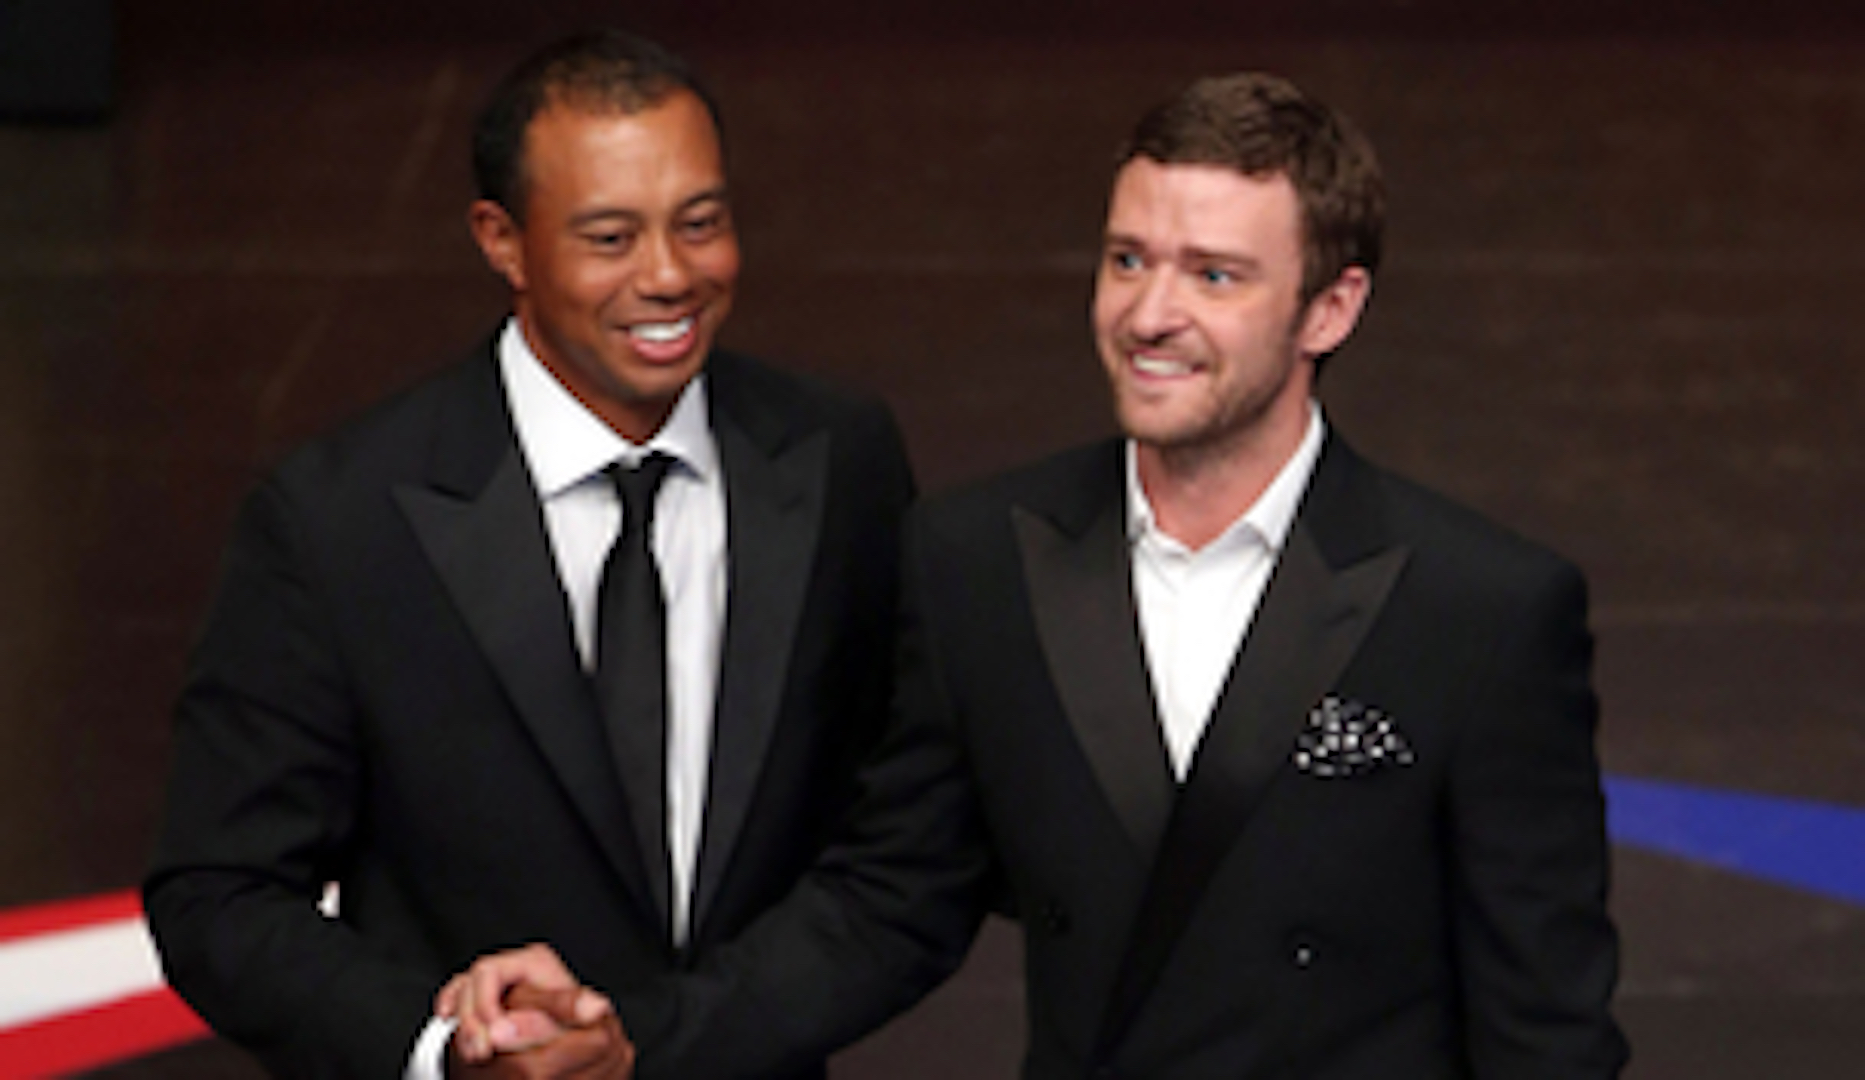 Woods & Timberlake invest together